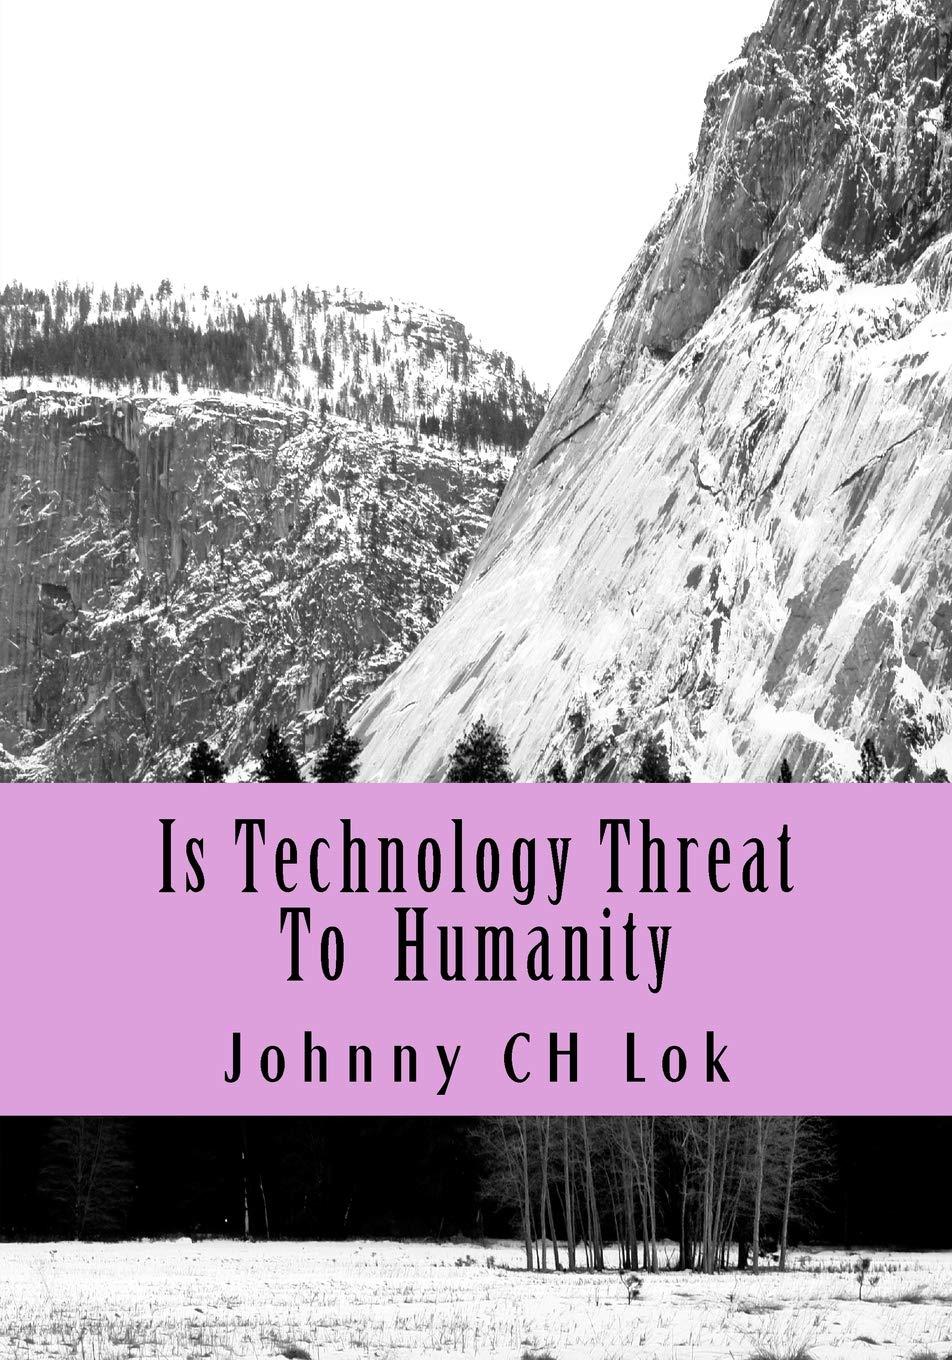 Technology is a threat to humanity